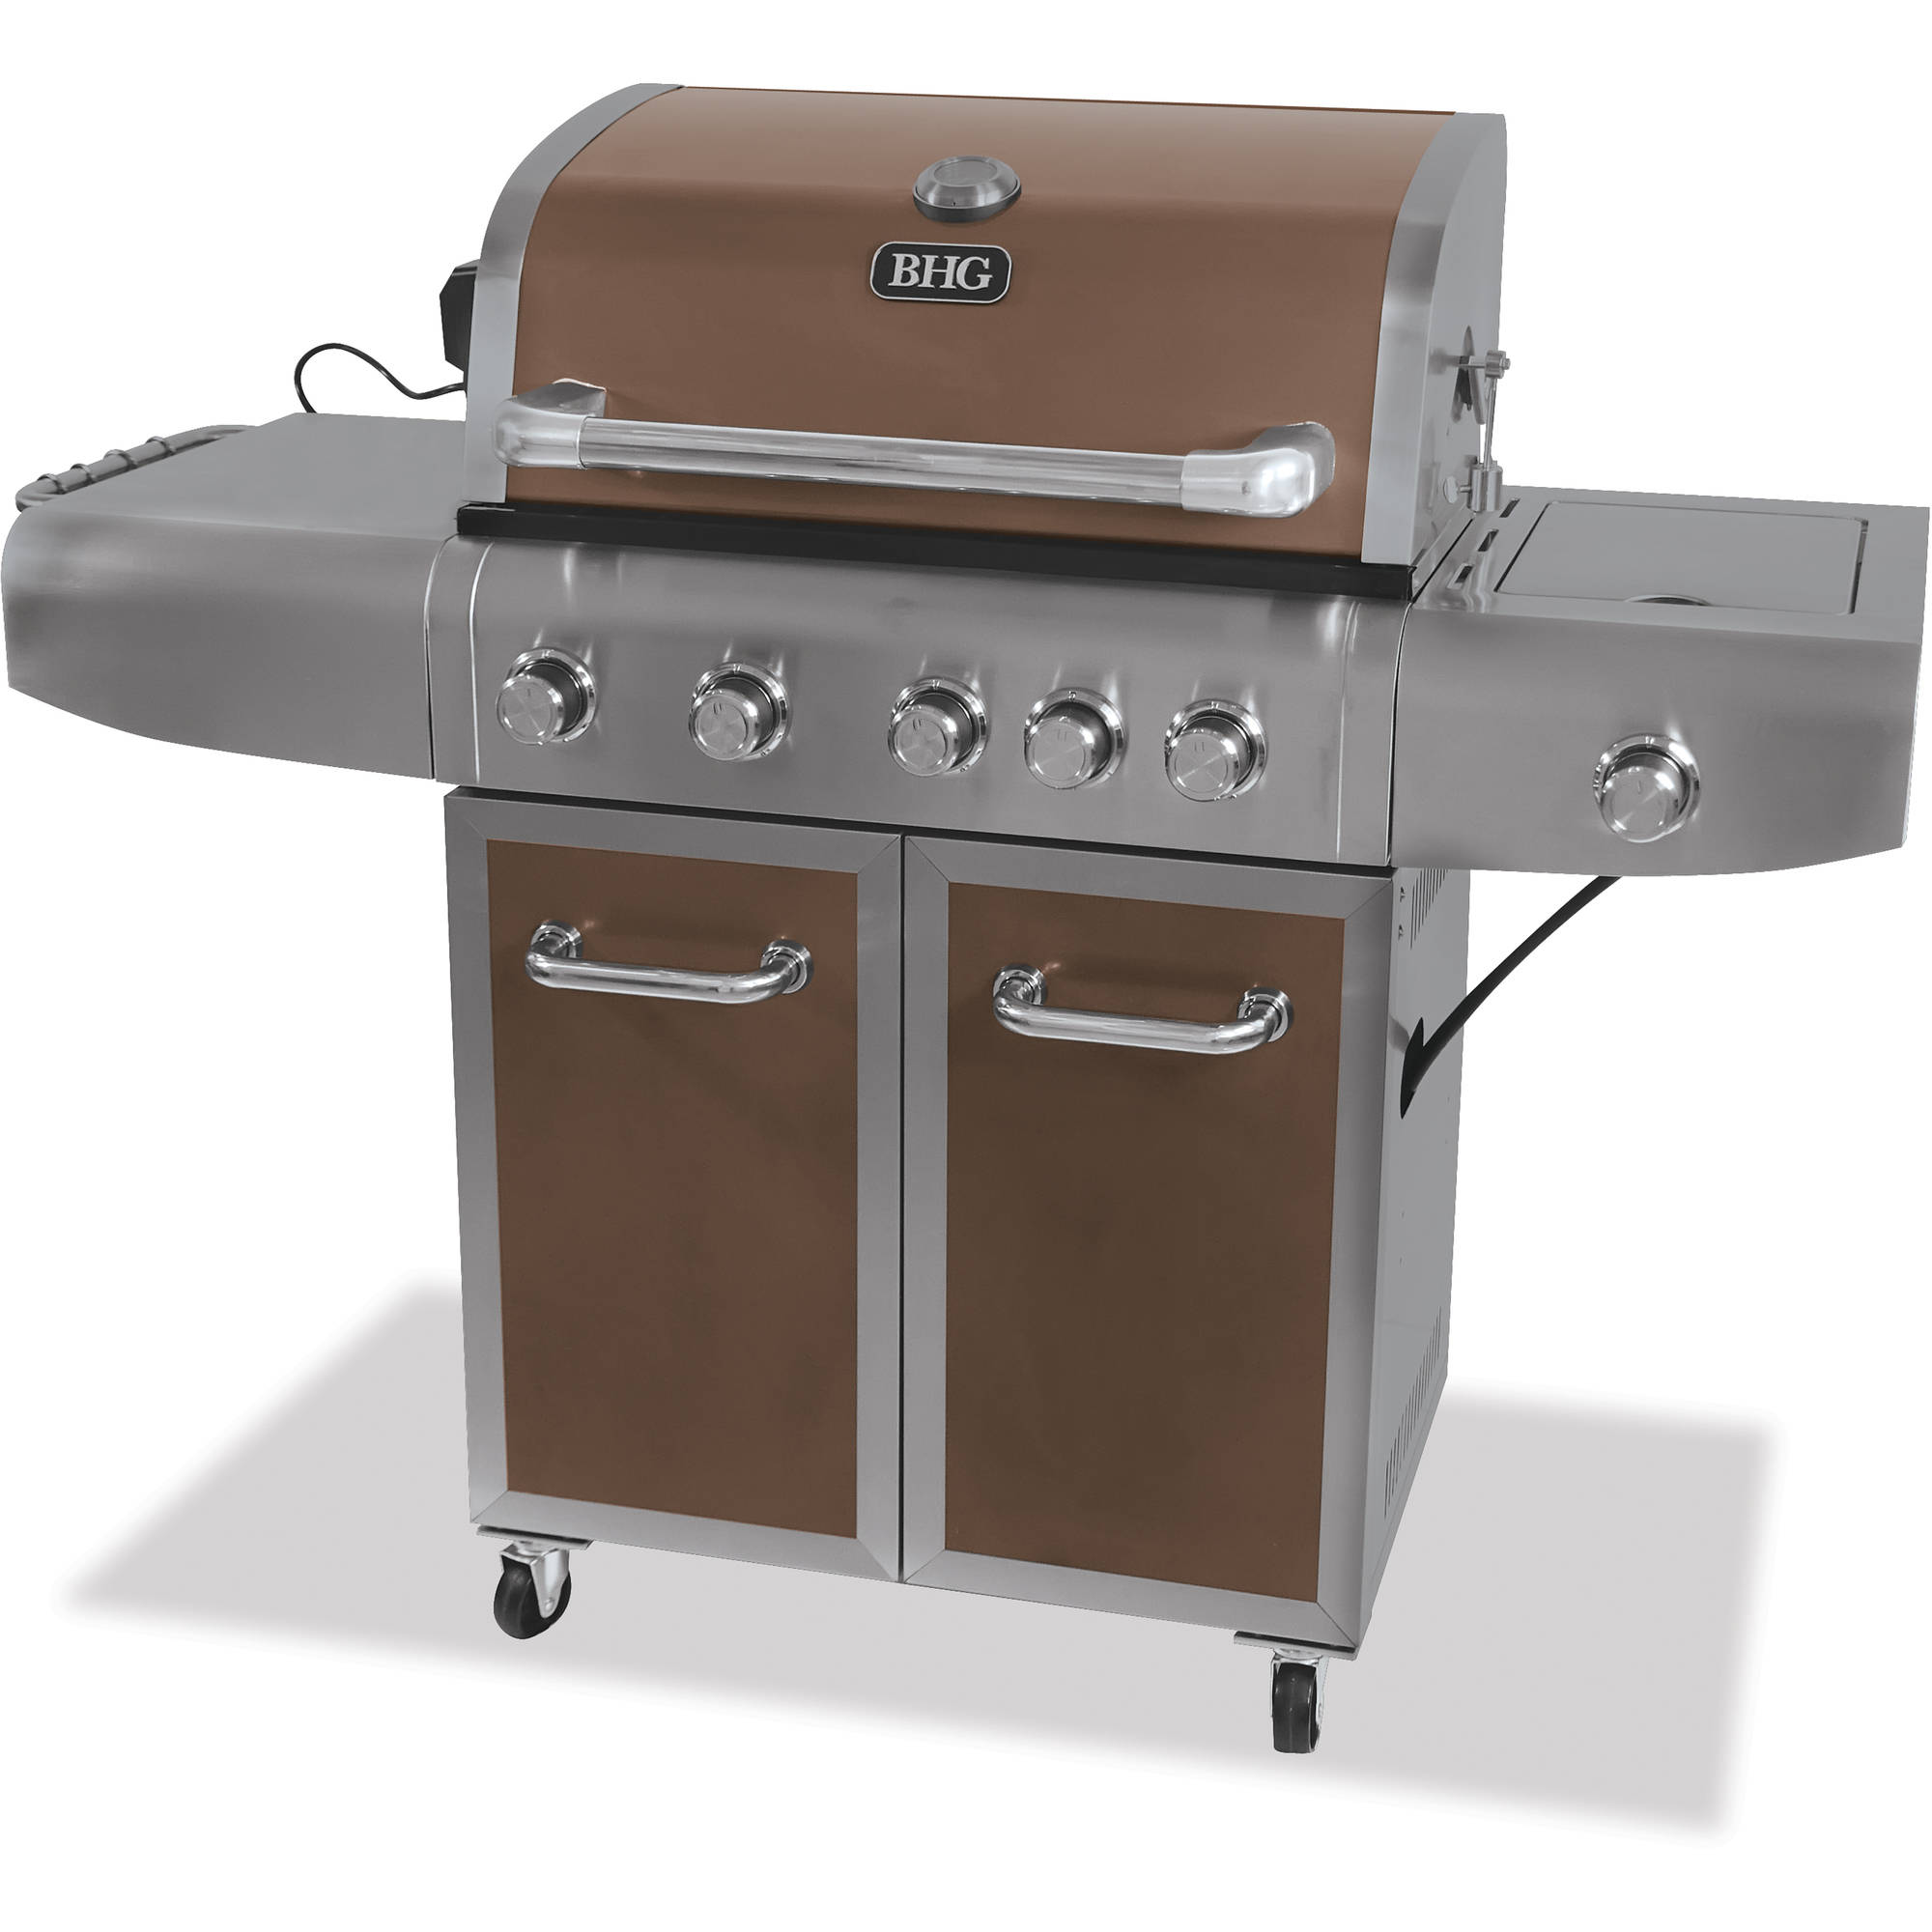 Better Homes and Gardens 5 Burner Gas Grill Walmart